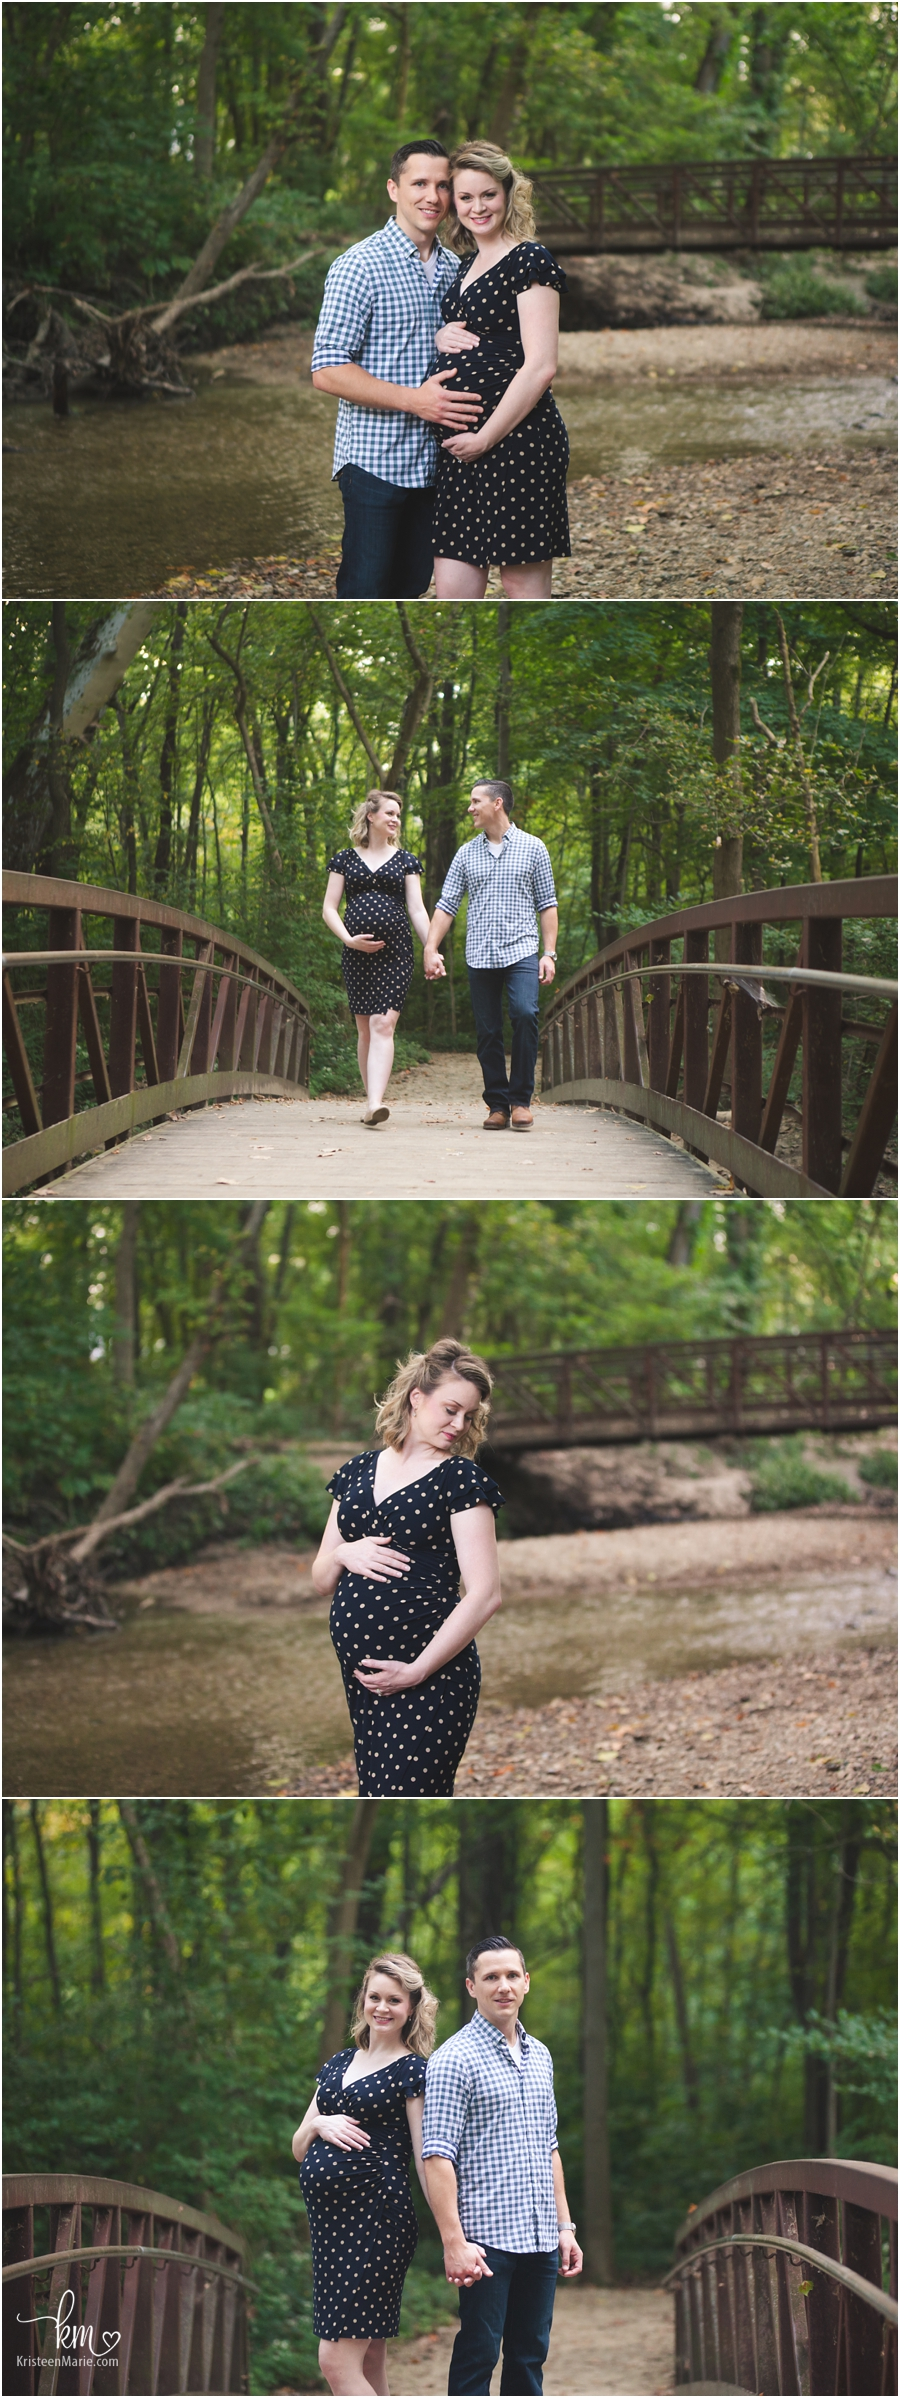 family on creek and bridge for maternity photography session in Indianapolis, Indiana